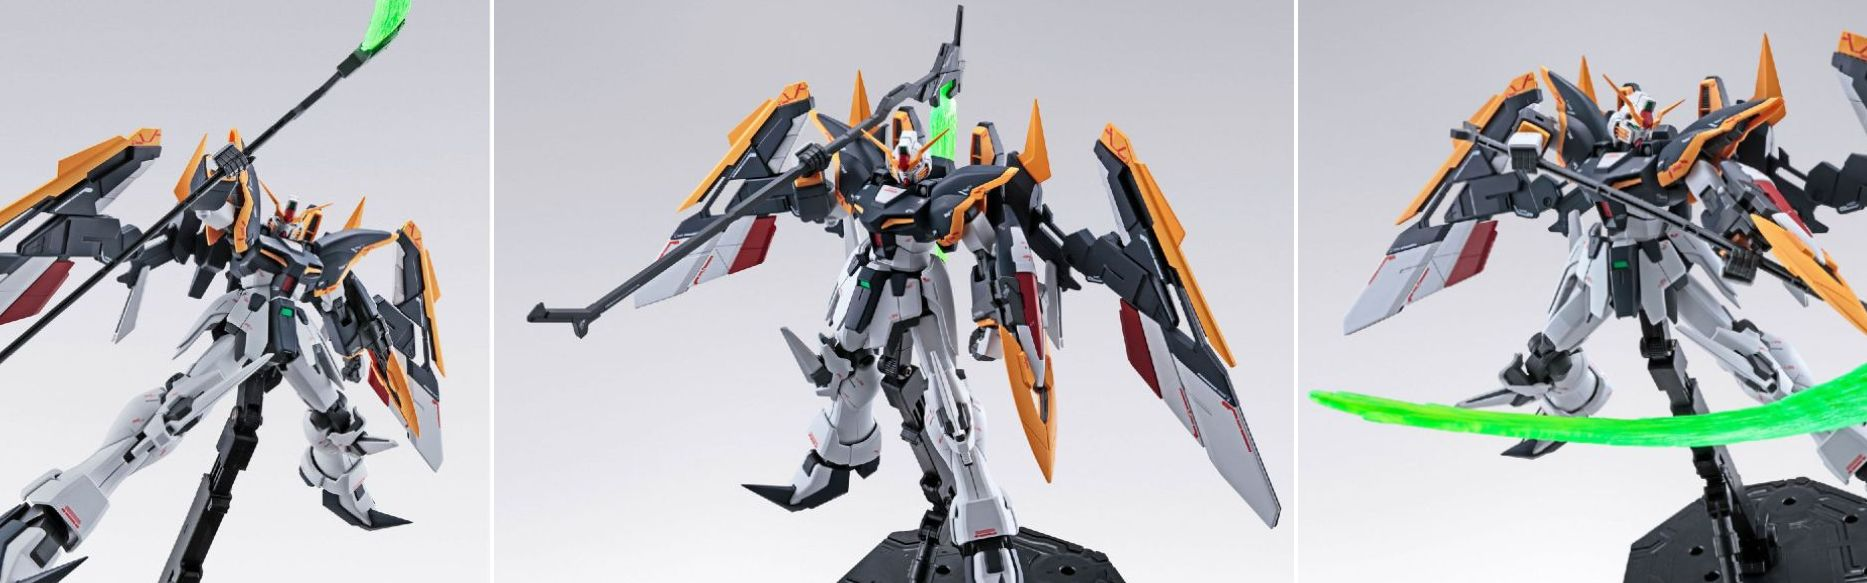 new-mobile-report-gundam-wing-endless-waltz-the-glory-of-losers-master-grade-1-100-plastic-model-xxxg-01d-gundam-deathscythe-rousette-equipment